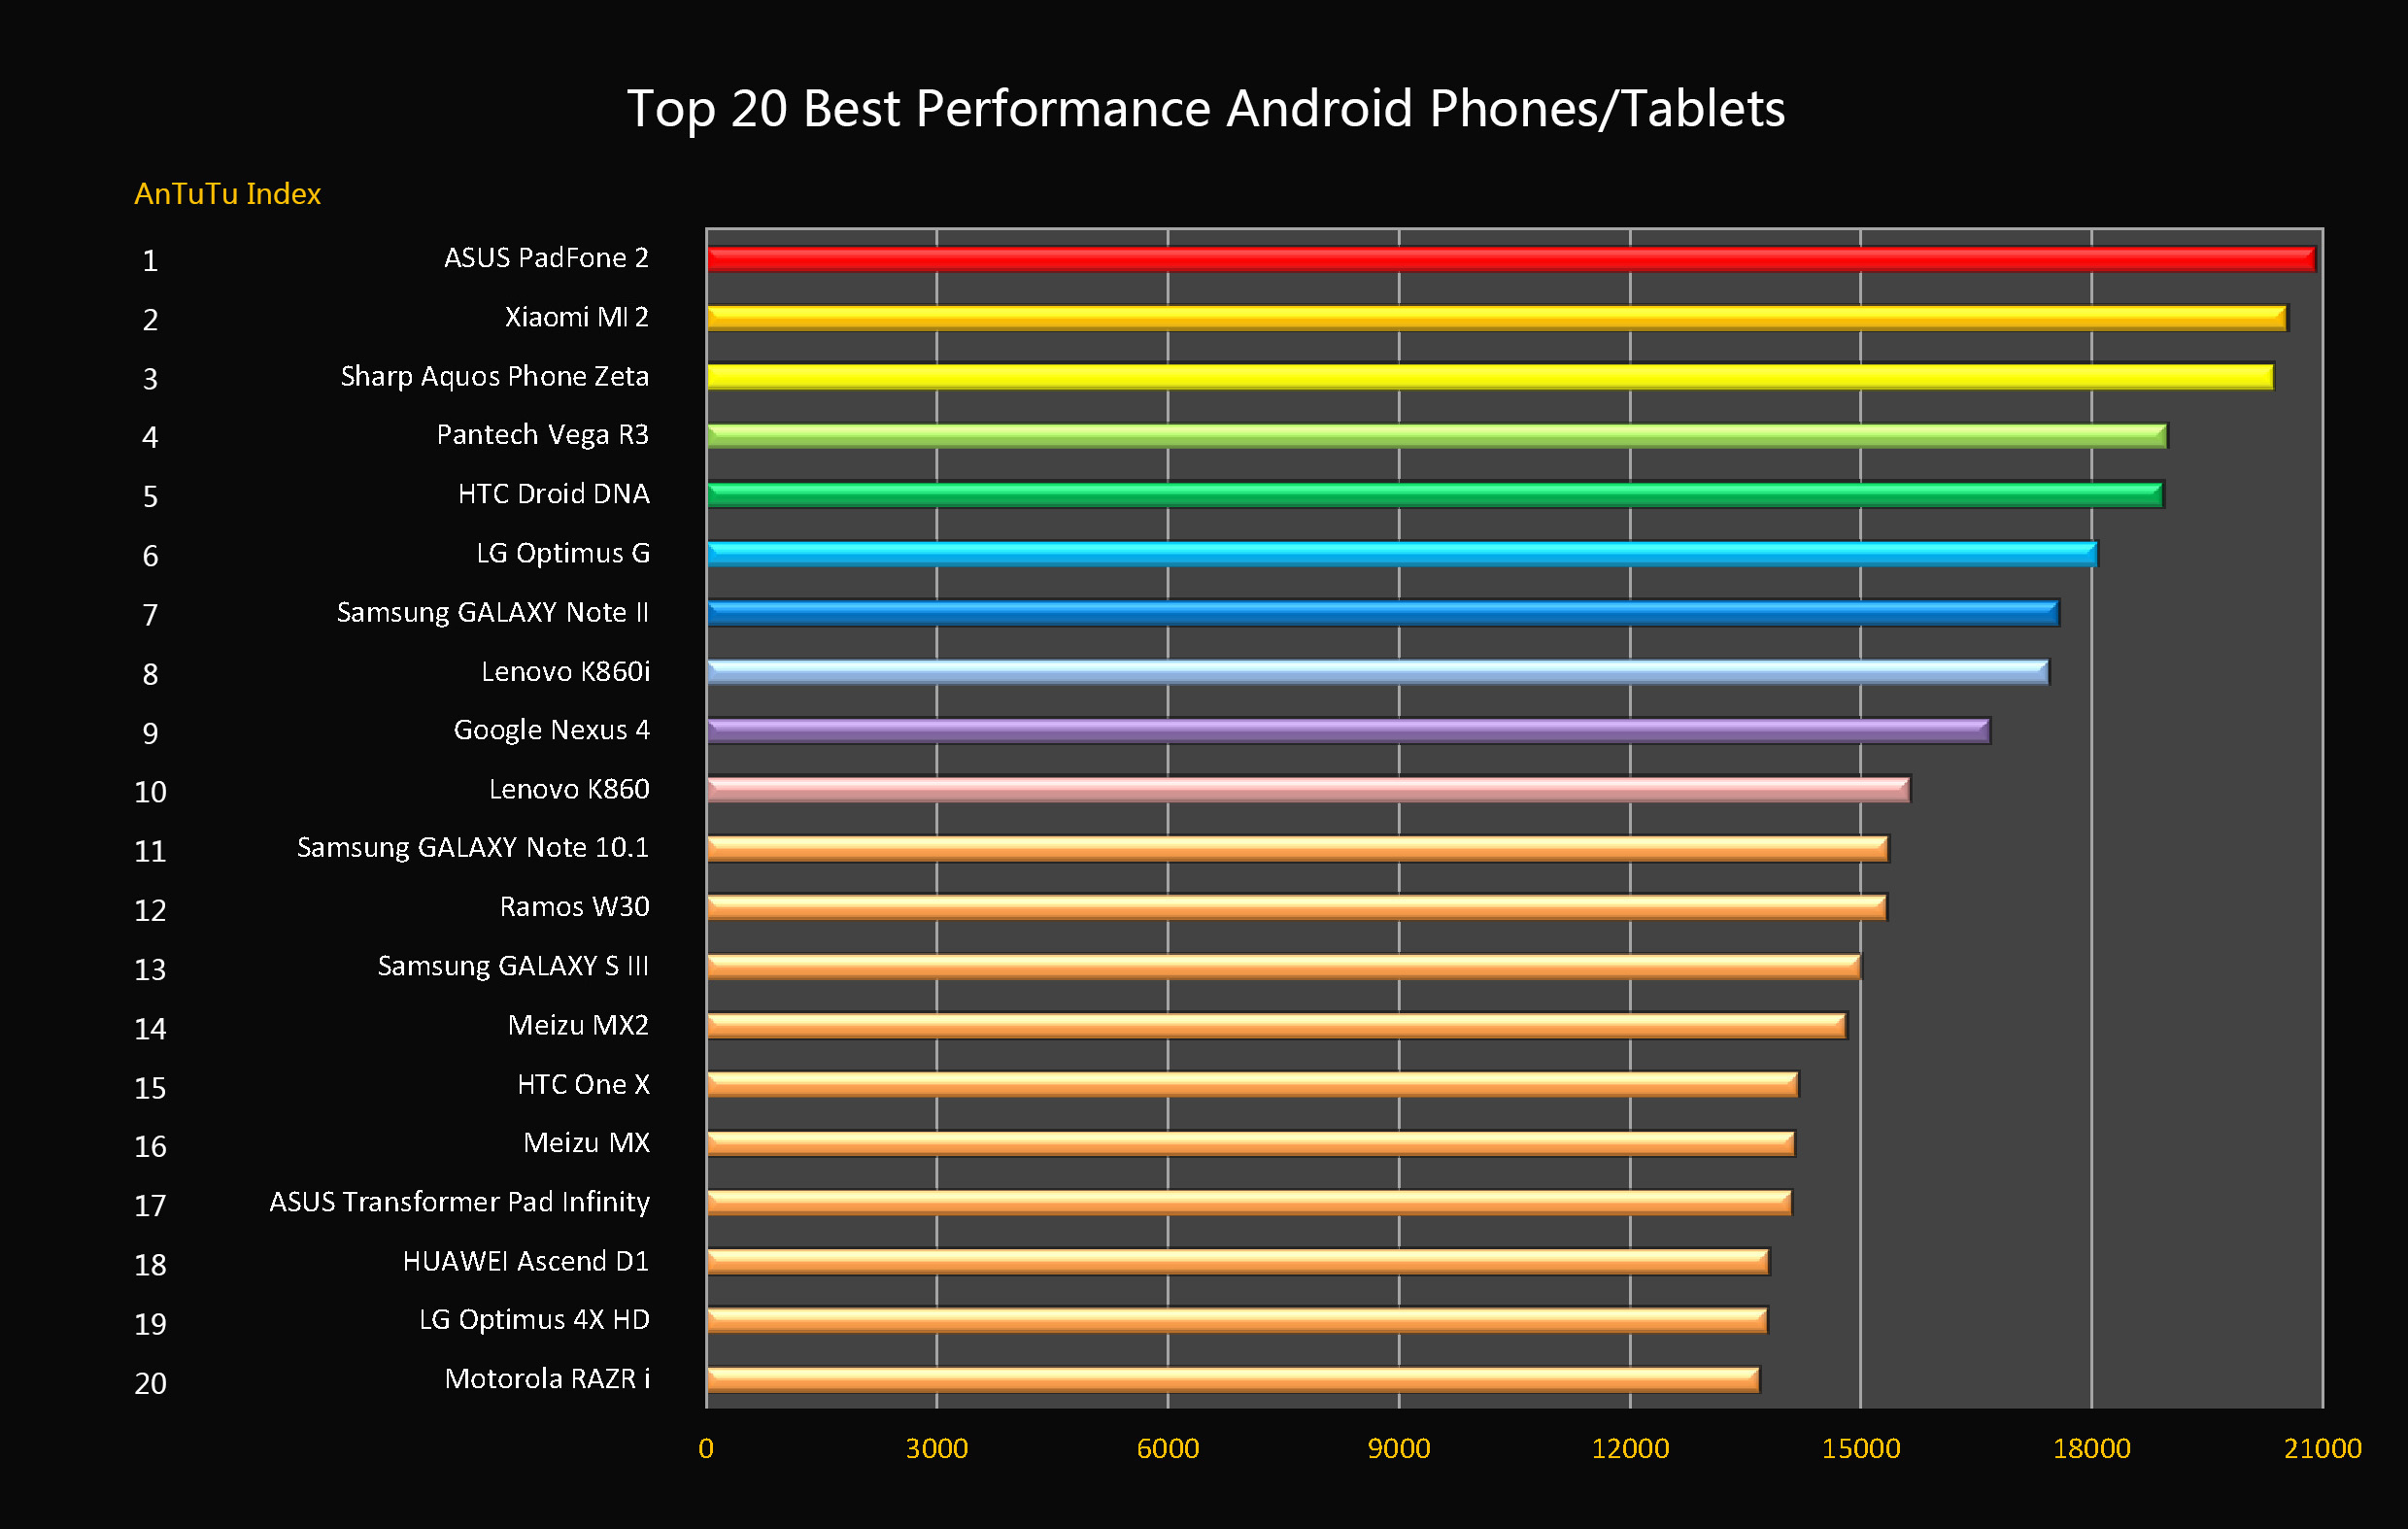 2012 Top 20 Best Performance Android Mobile Phones